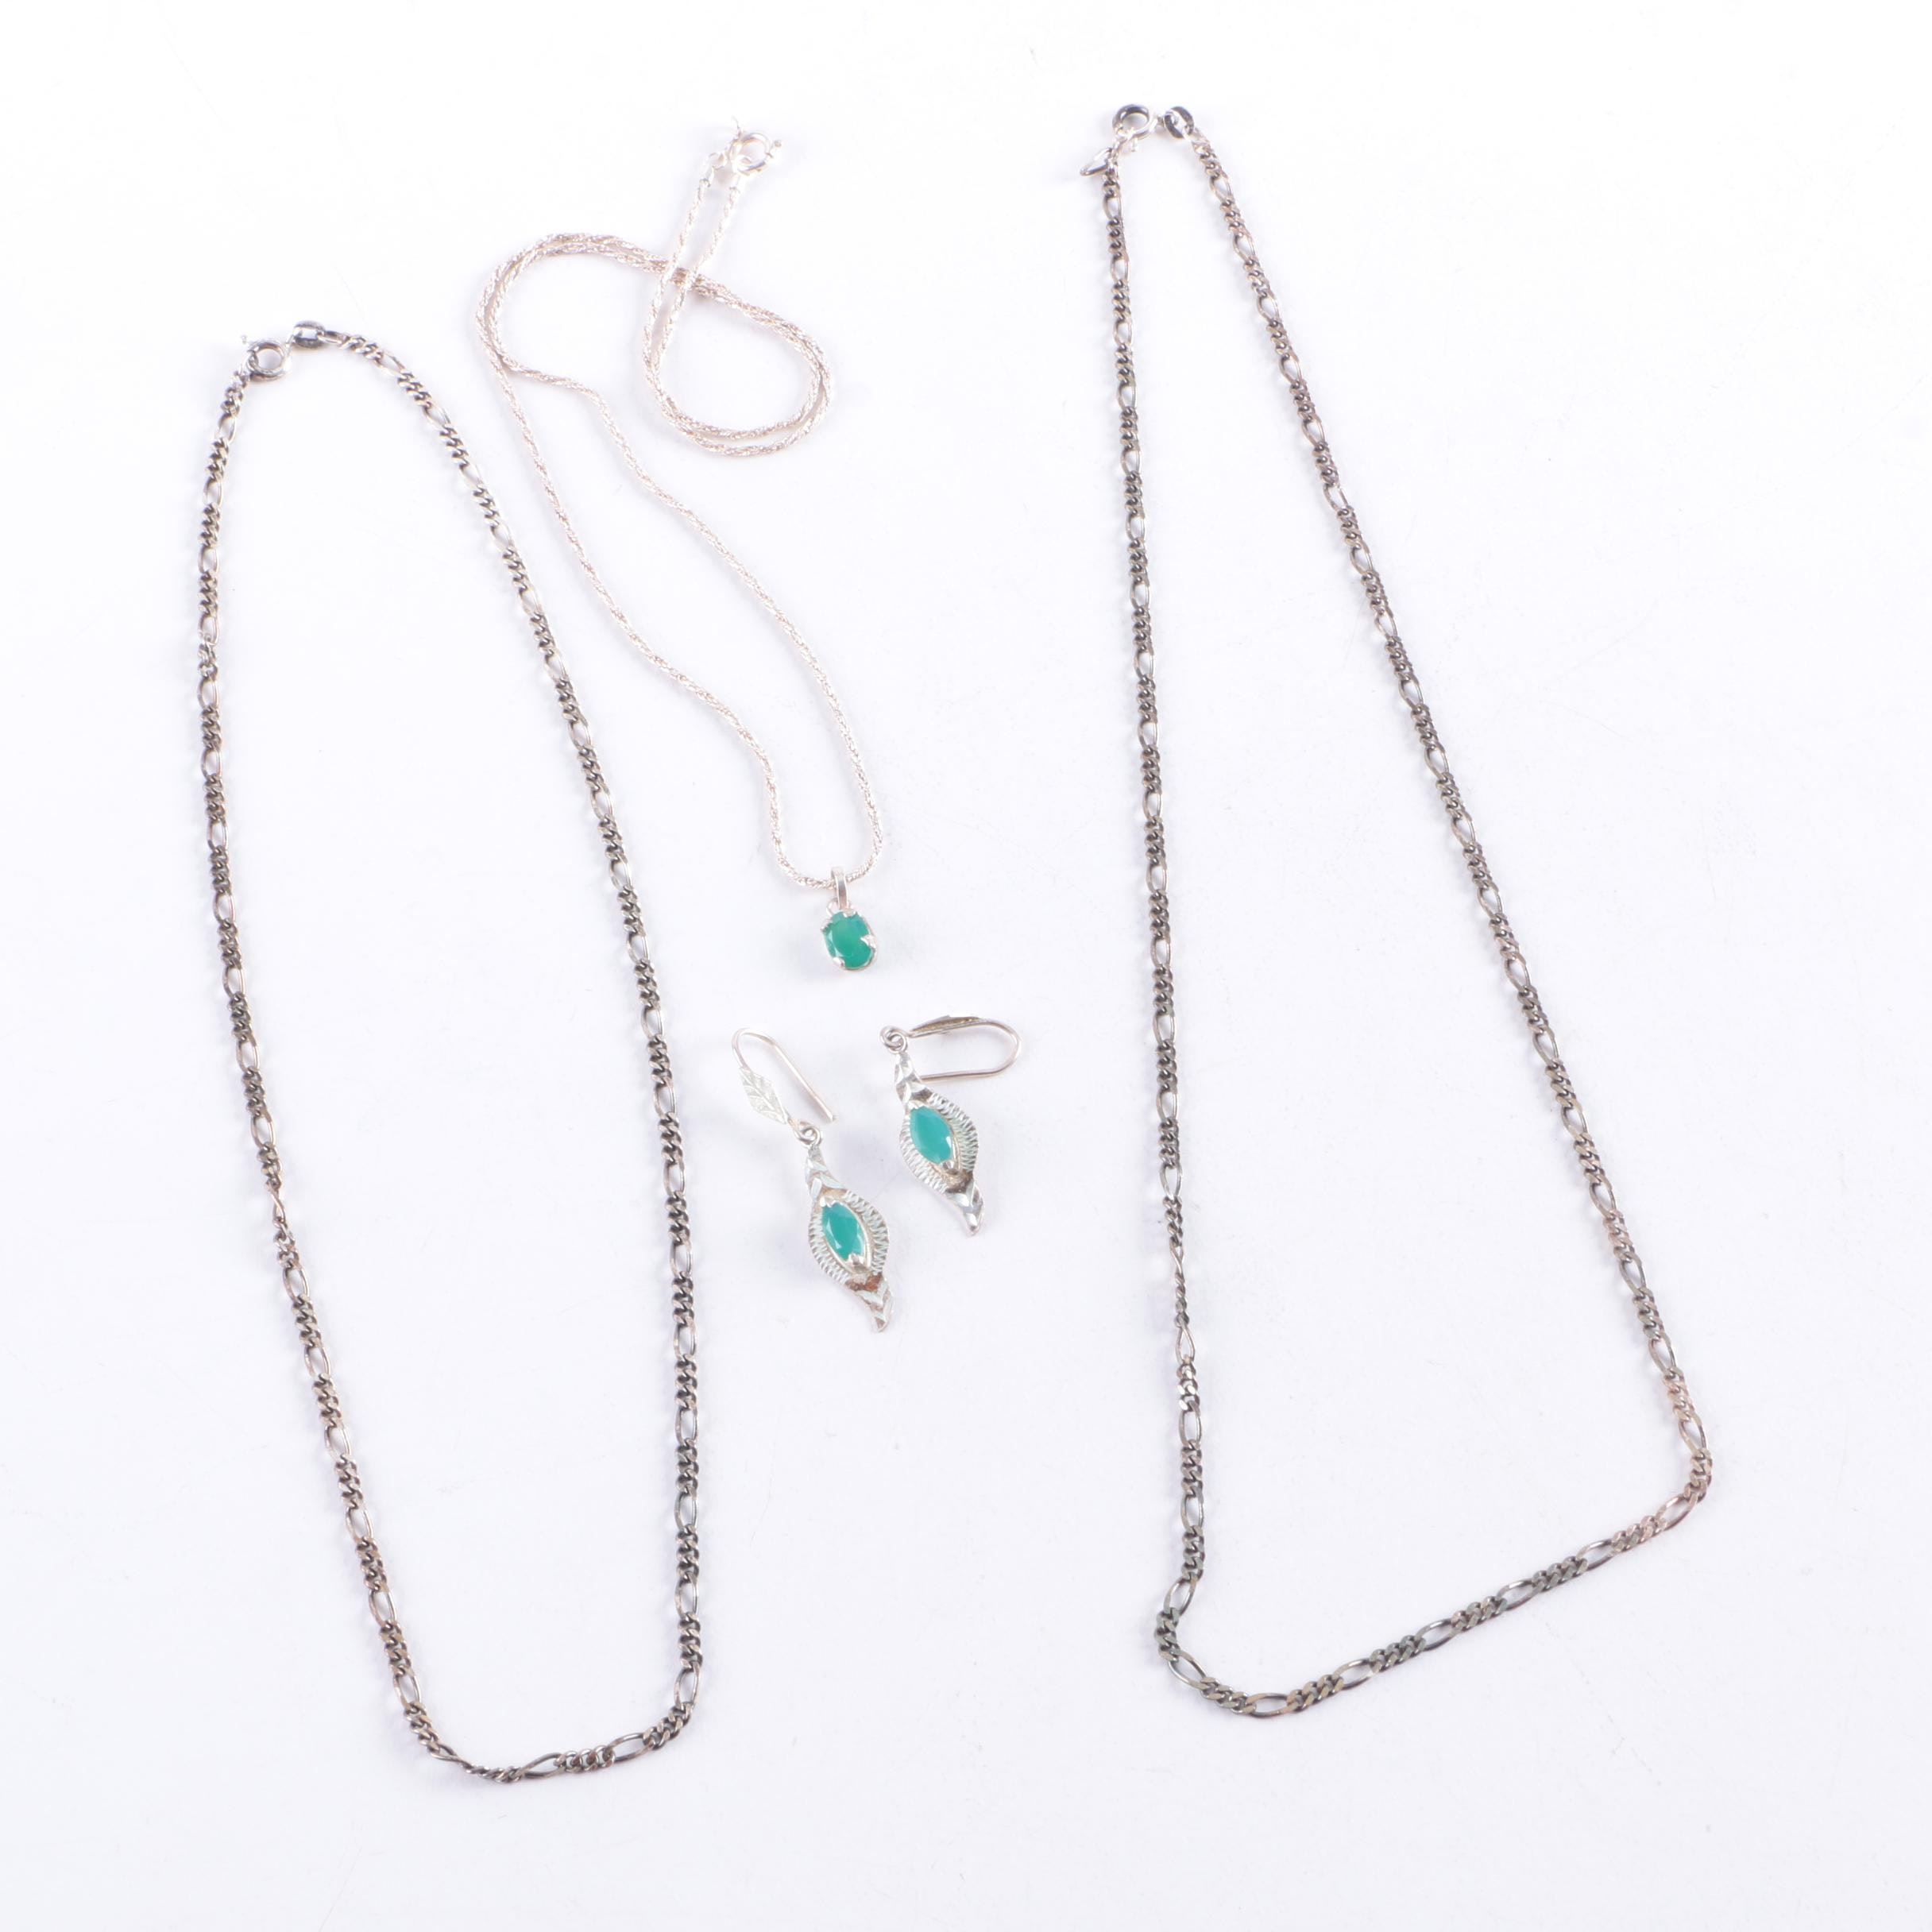 Sterling Silver Necklaces and Earrings Including Chalcedony